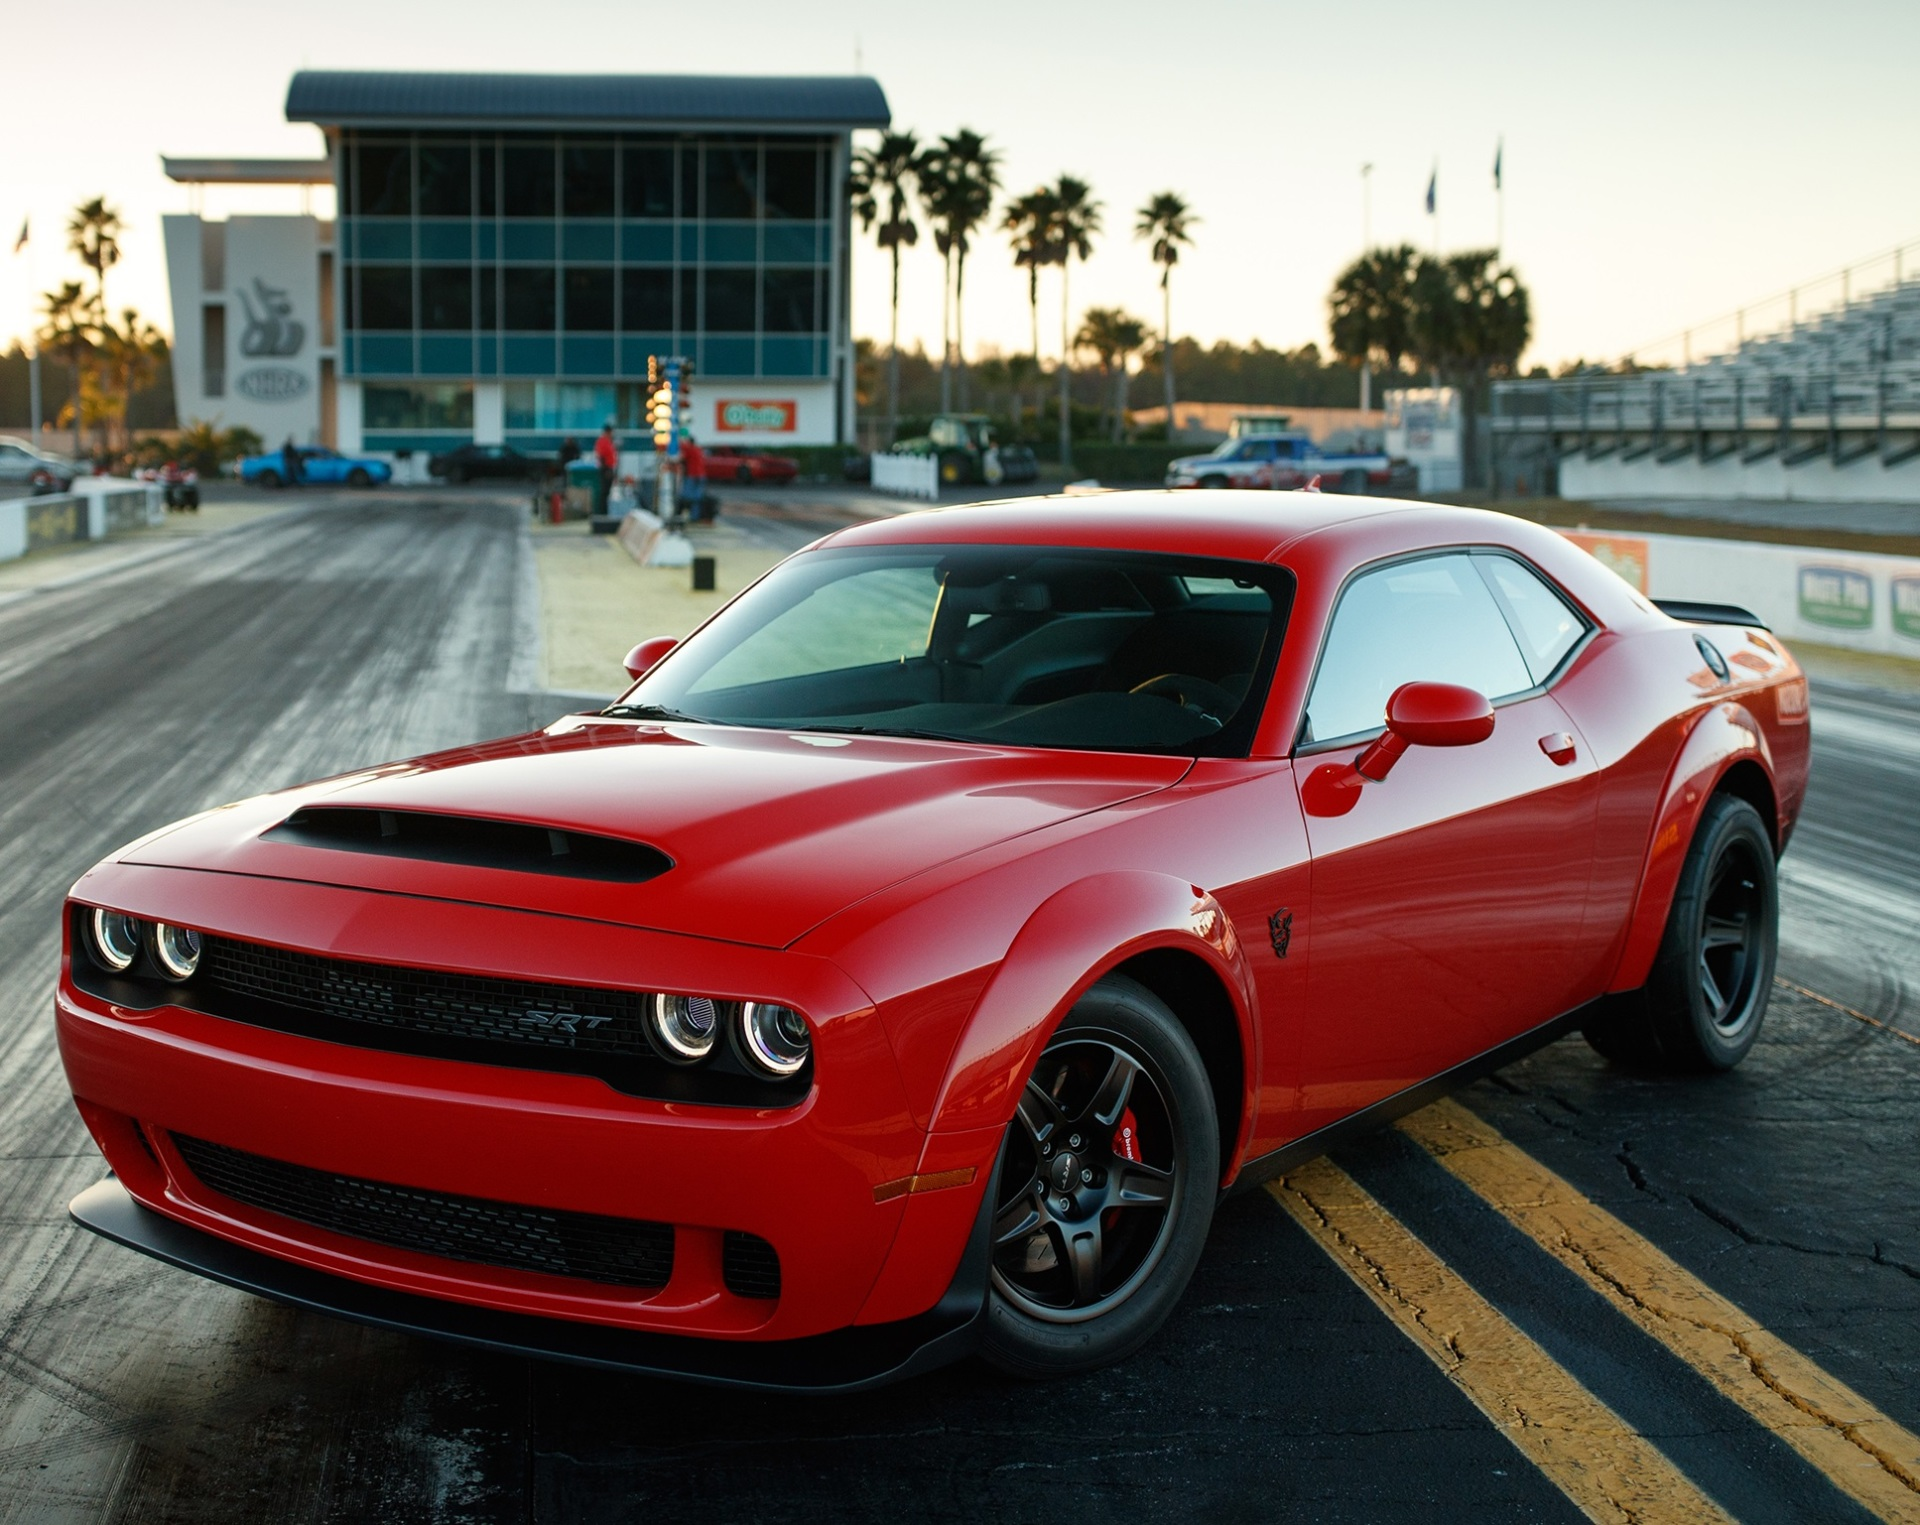 Photo Gallery - The 2018 Dodge Challenger SRT Demon